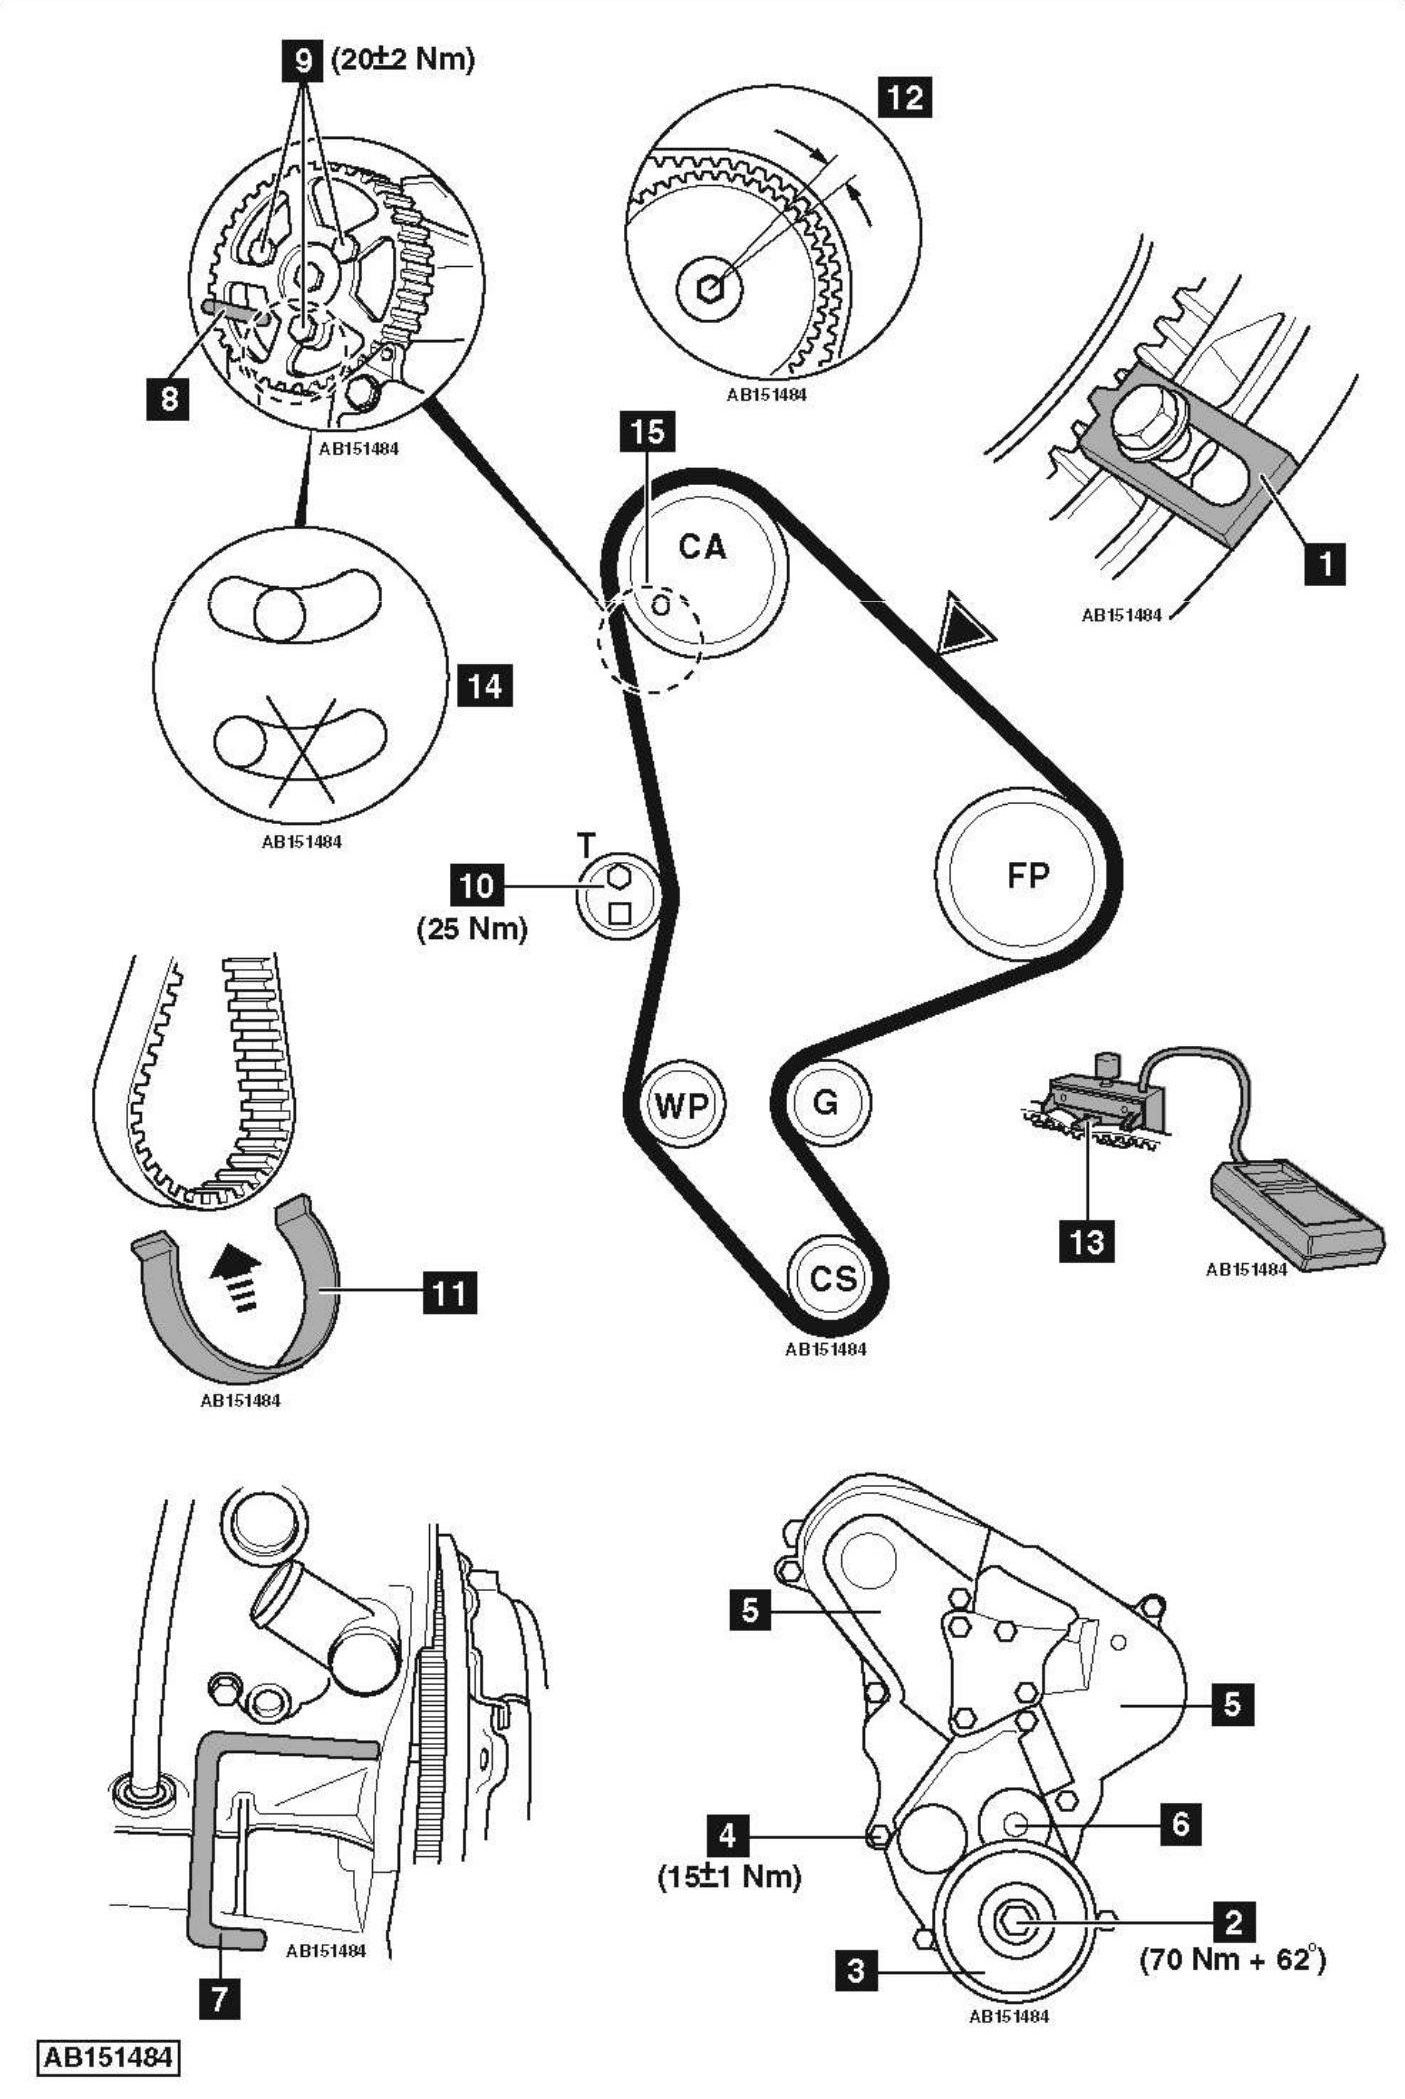 2008 Scion Tc Serpentine Belt Diagram on 2003 acura rsx fuse box diagram